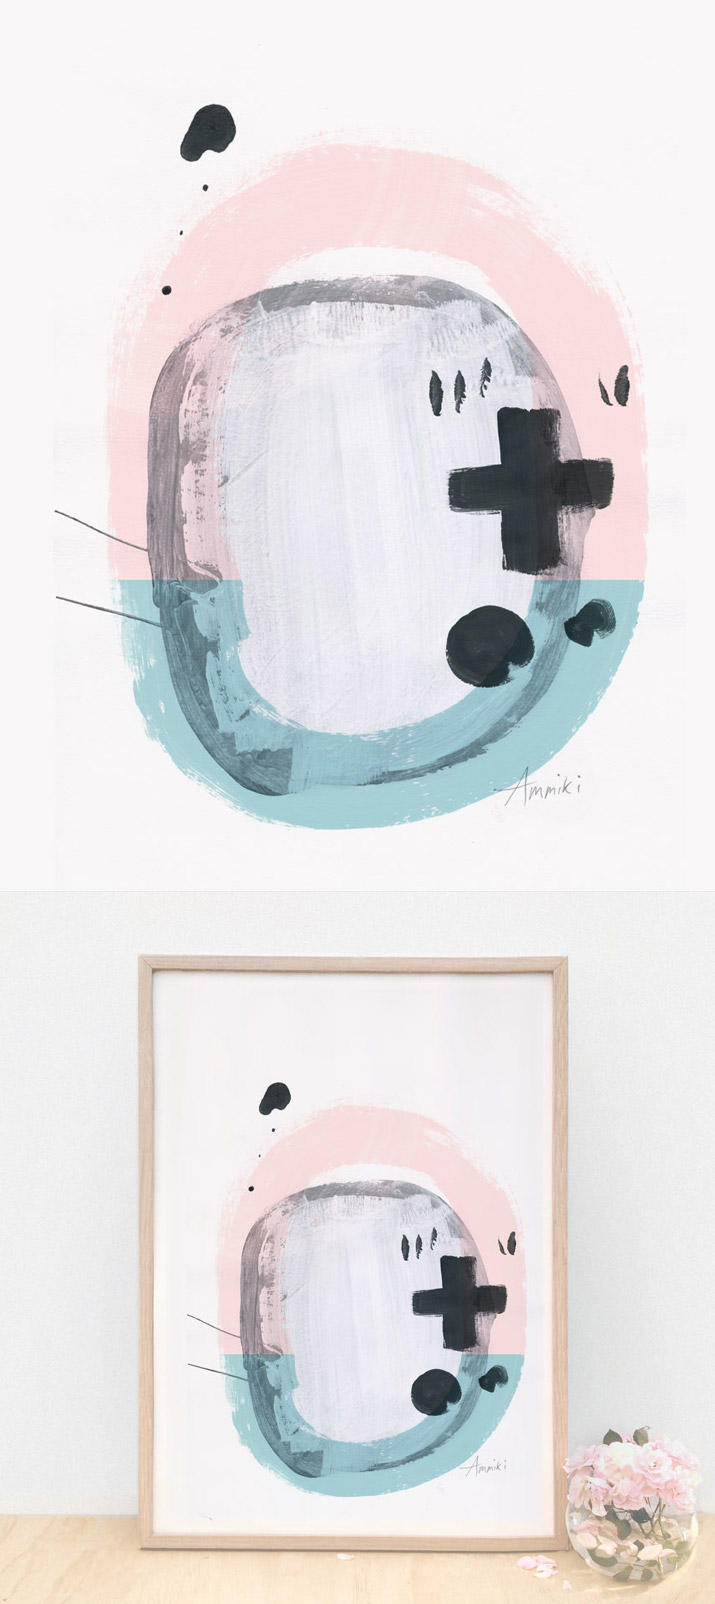 Abstract modern contemporary art print, circles and crosses, light green and pink